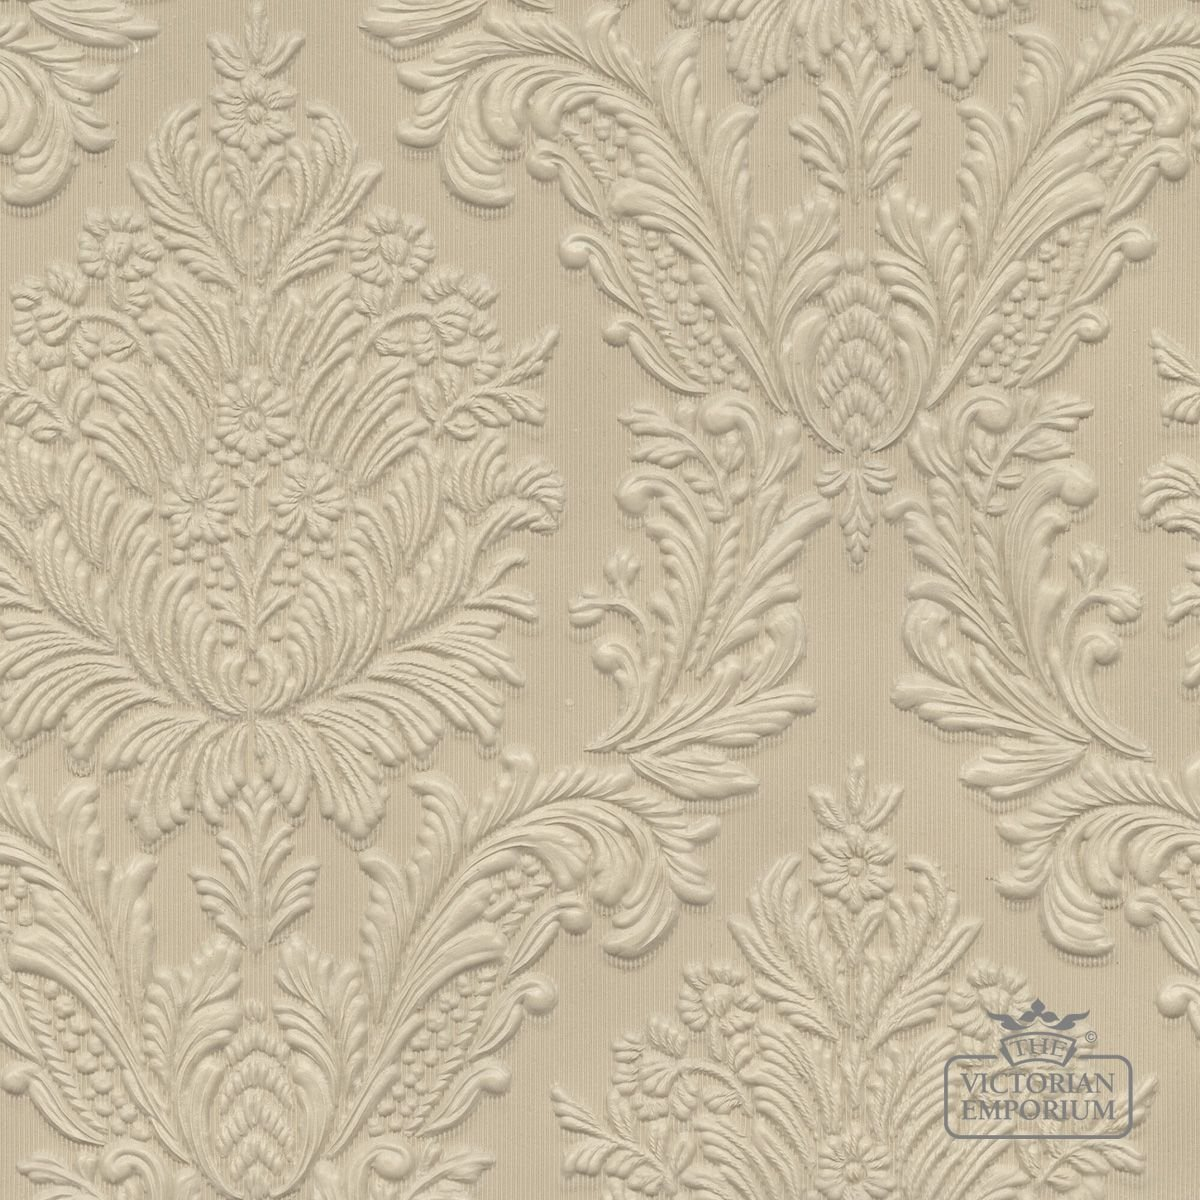 Lincrusta wallpaper ve1888 lincrusta wallpaper for Embossed wallpaper